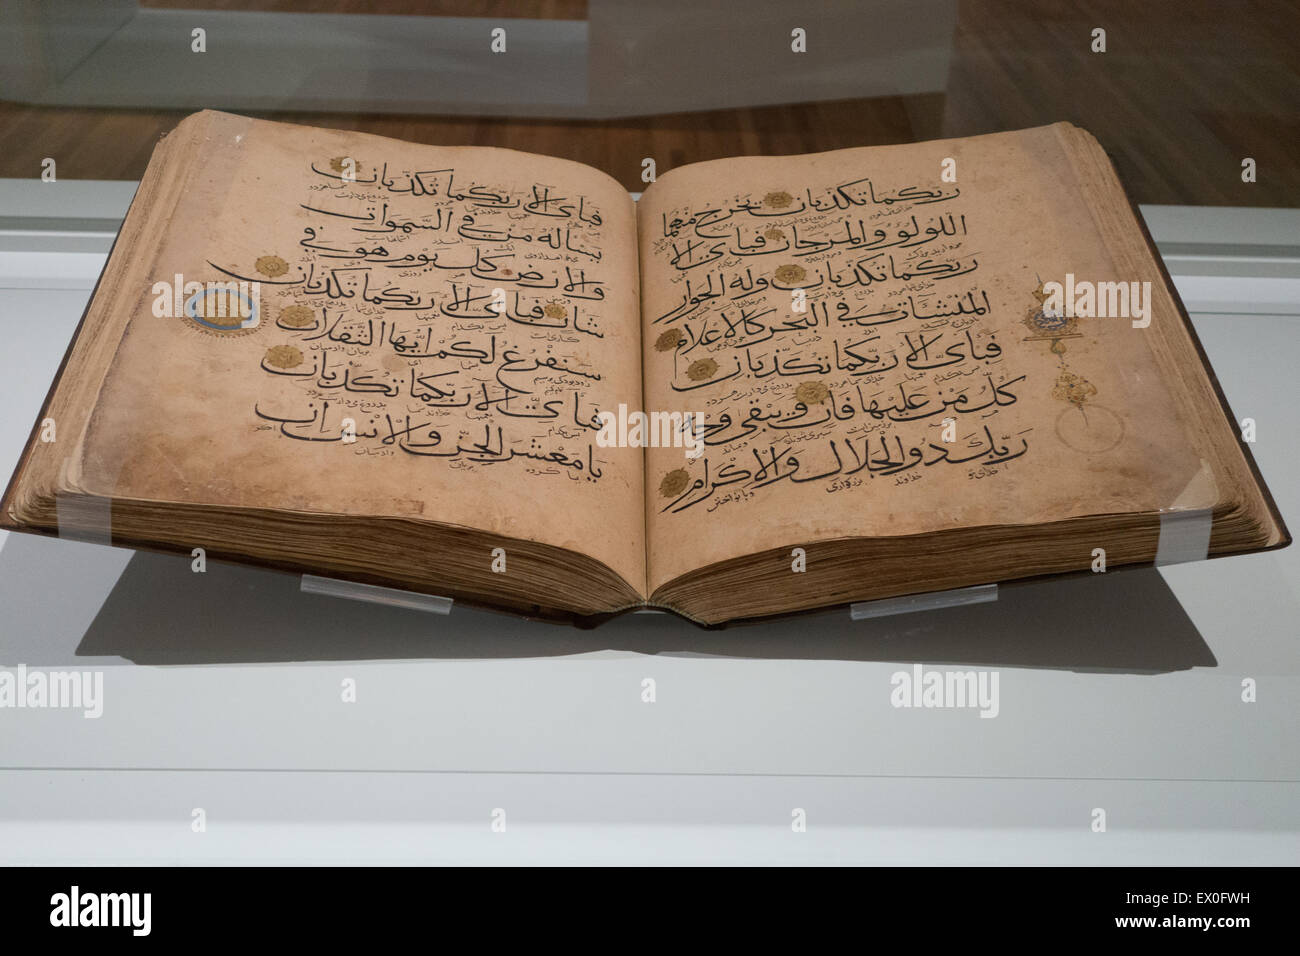 'Quran Baghdad Iraq 14 century ink watercolour gold on paper' - Stock Image